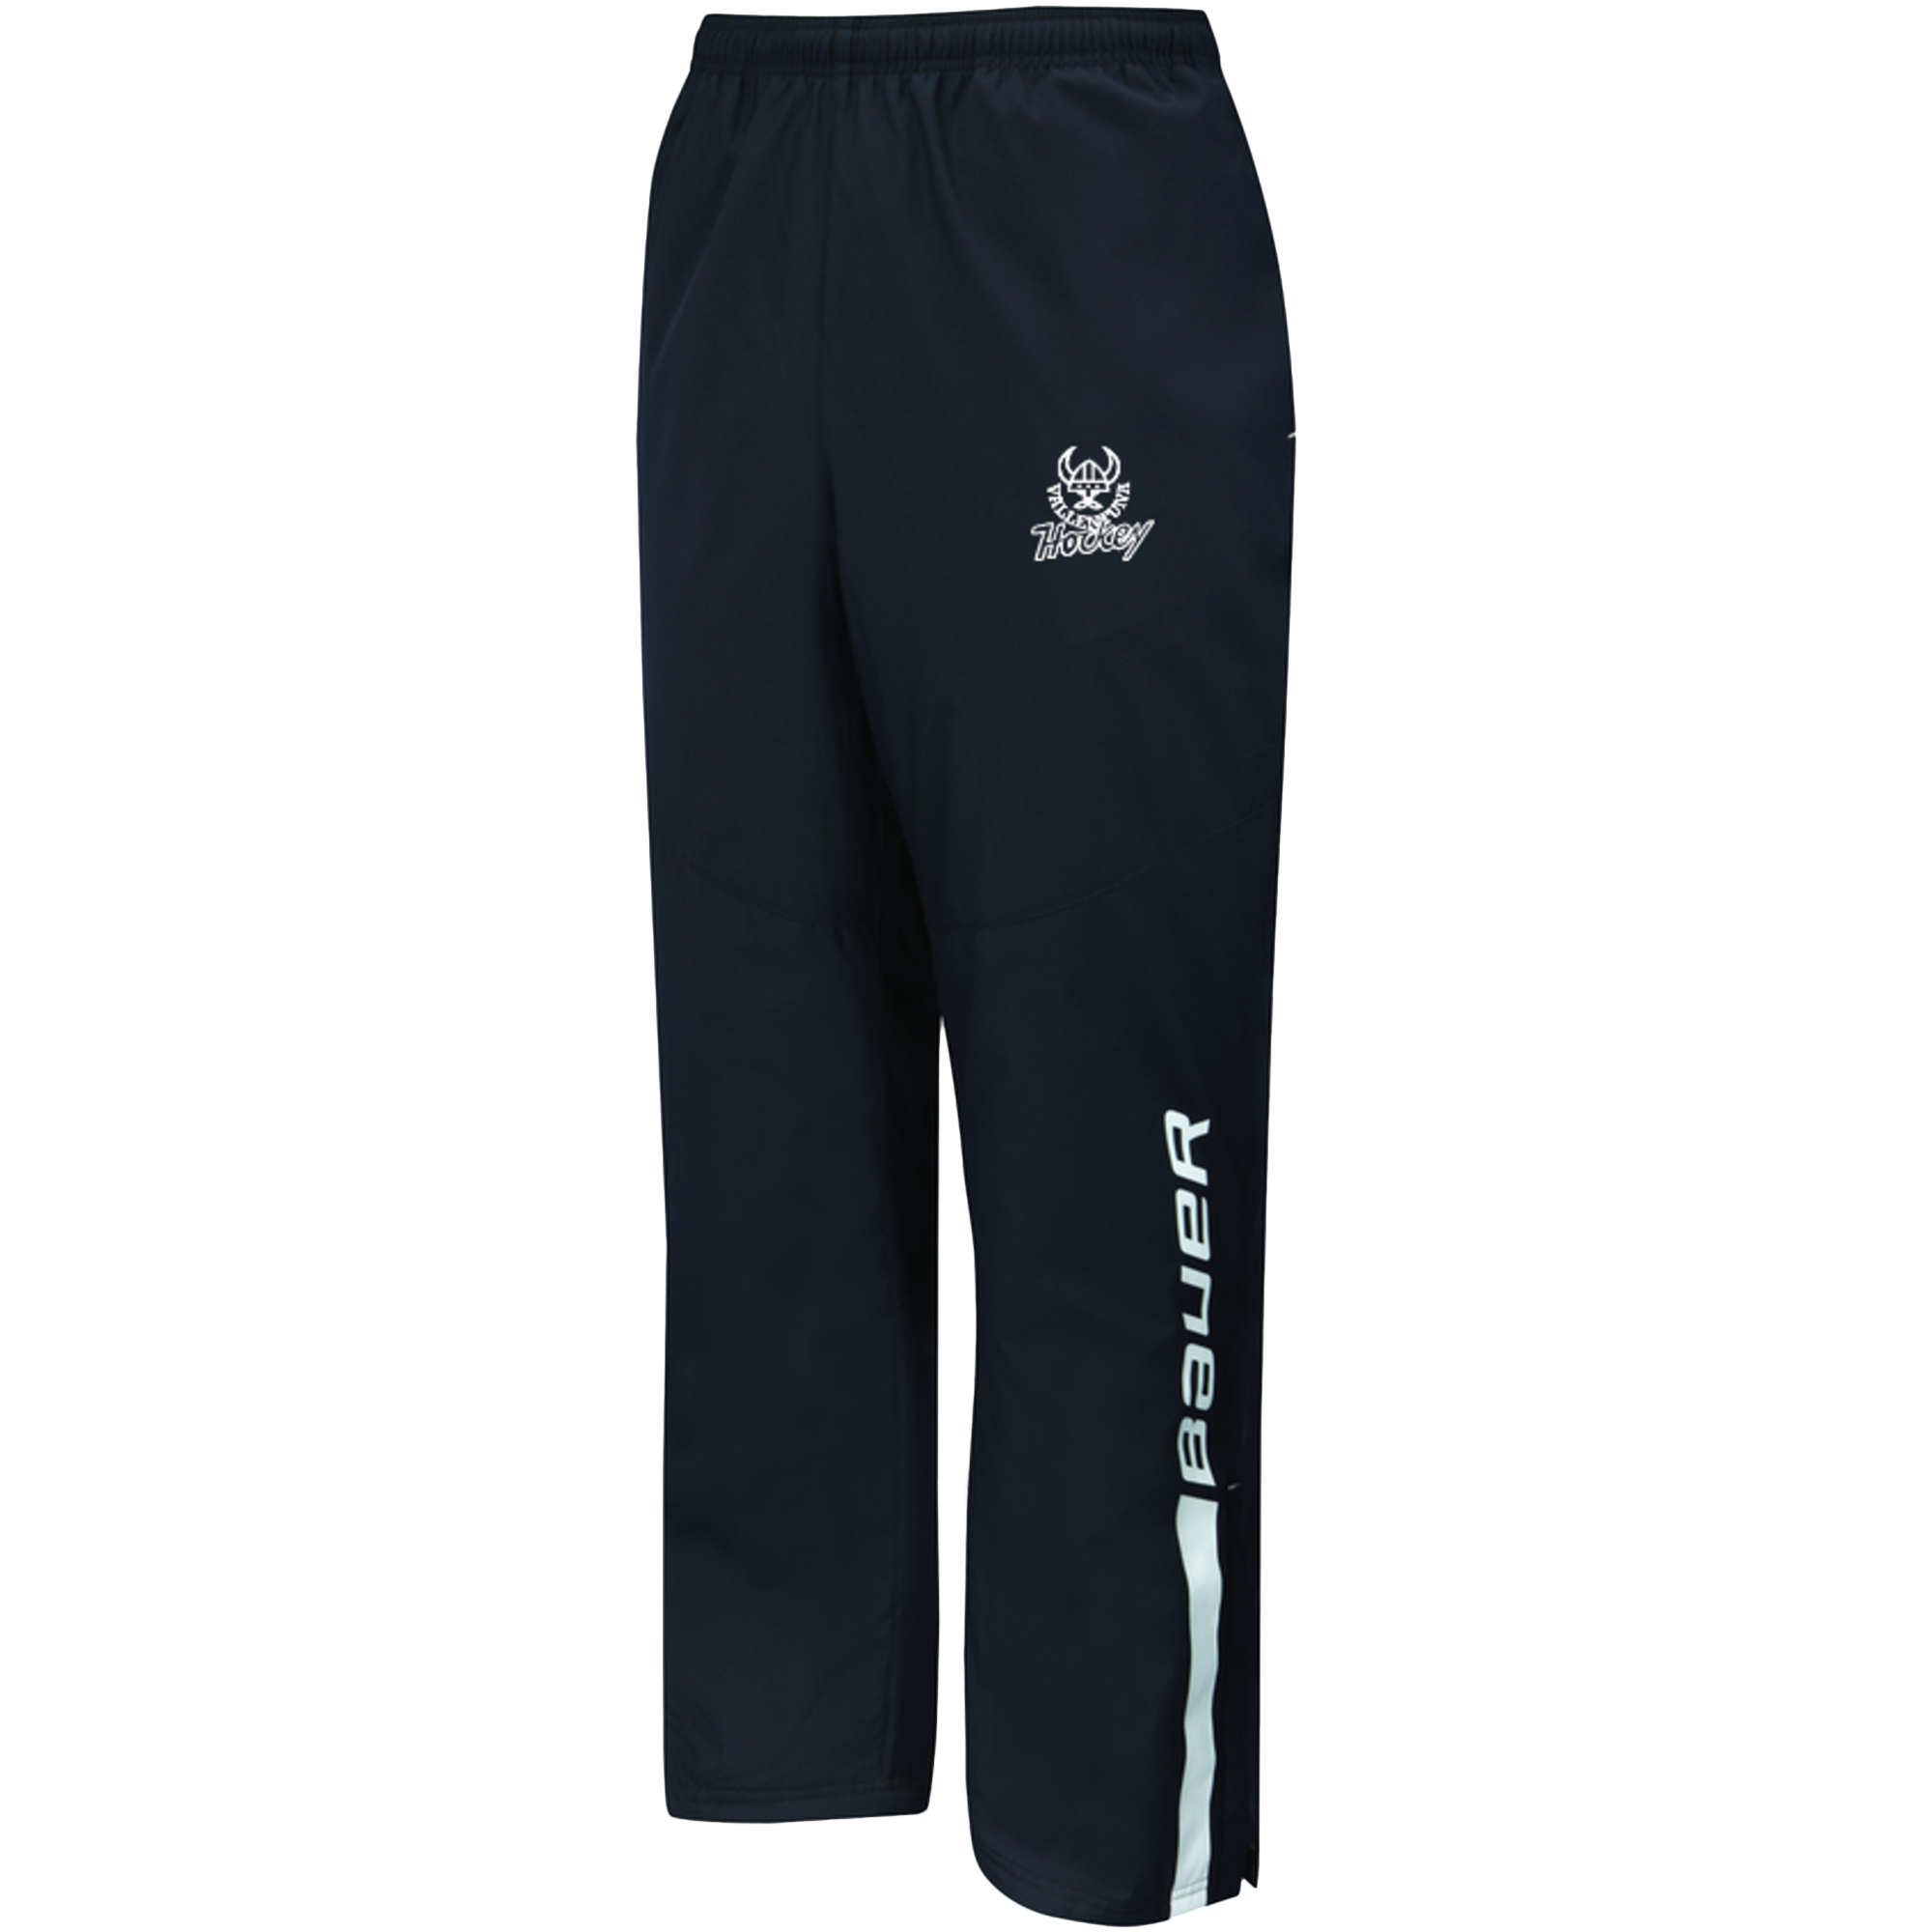 adidas TIERRO 13 Goalkeeper 34 Pant Padded Trouser for Soccer